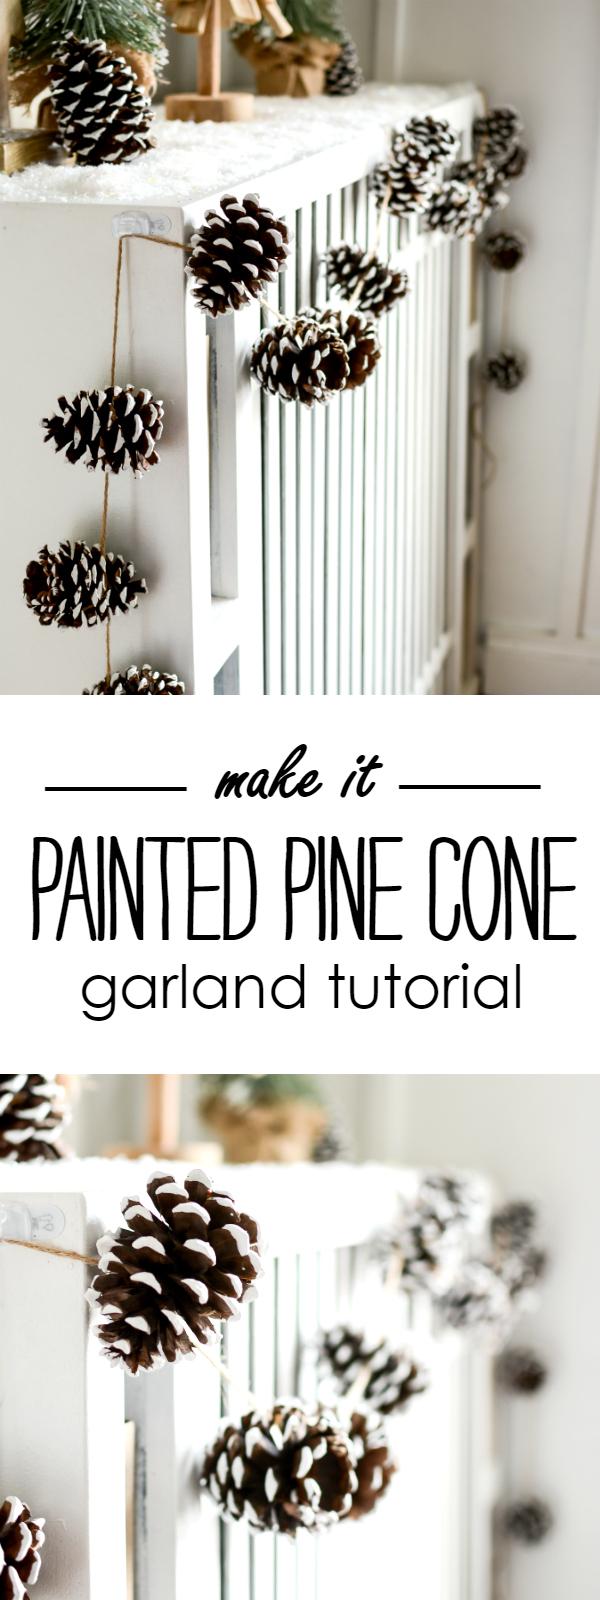 painted-pine-cone-garland-tutorial